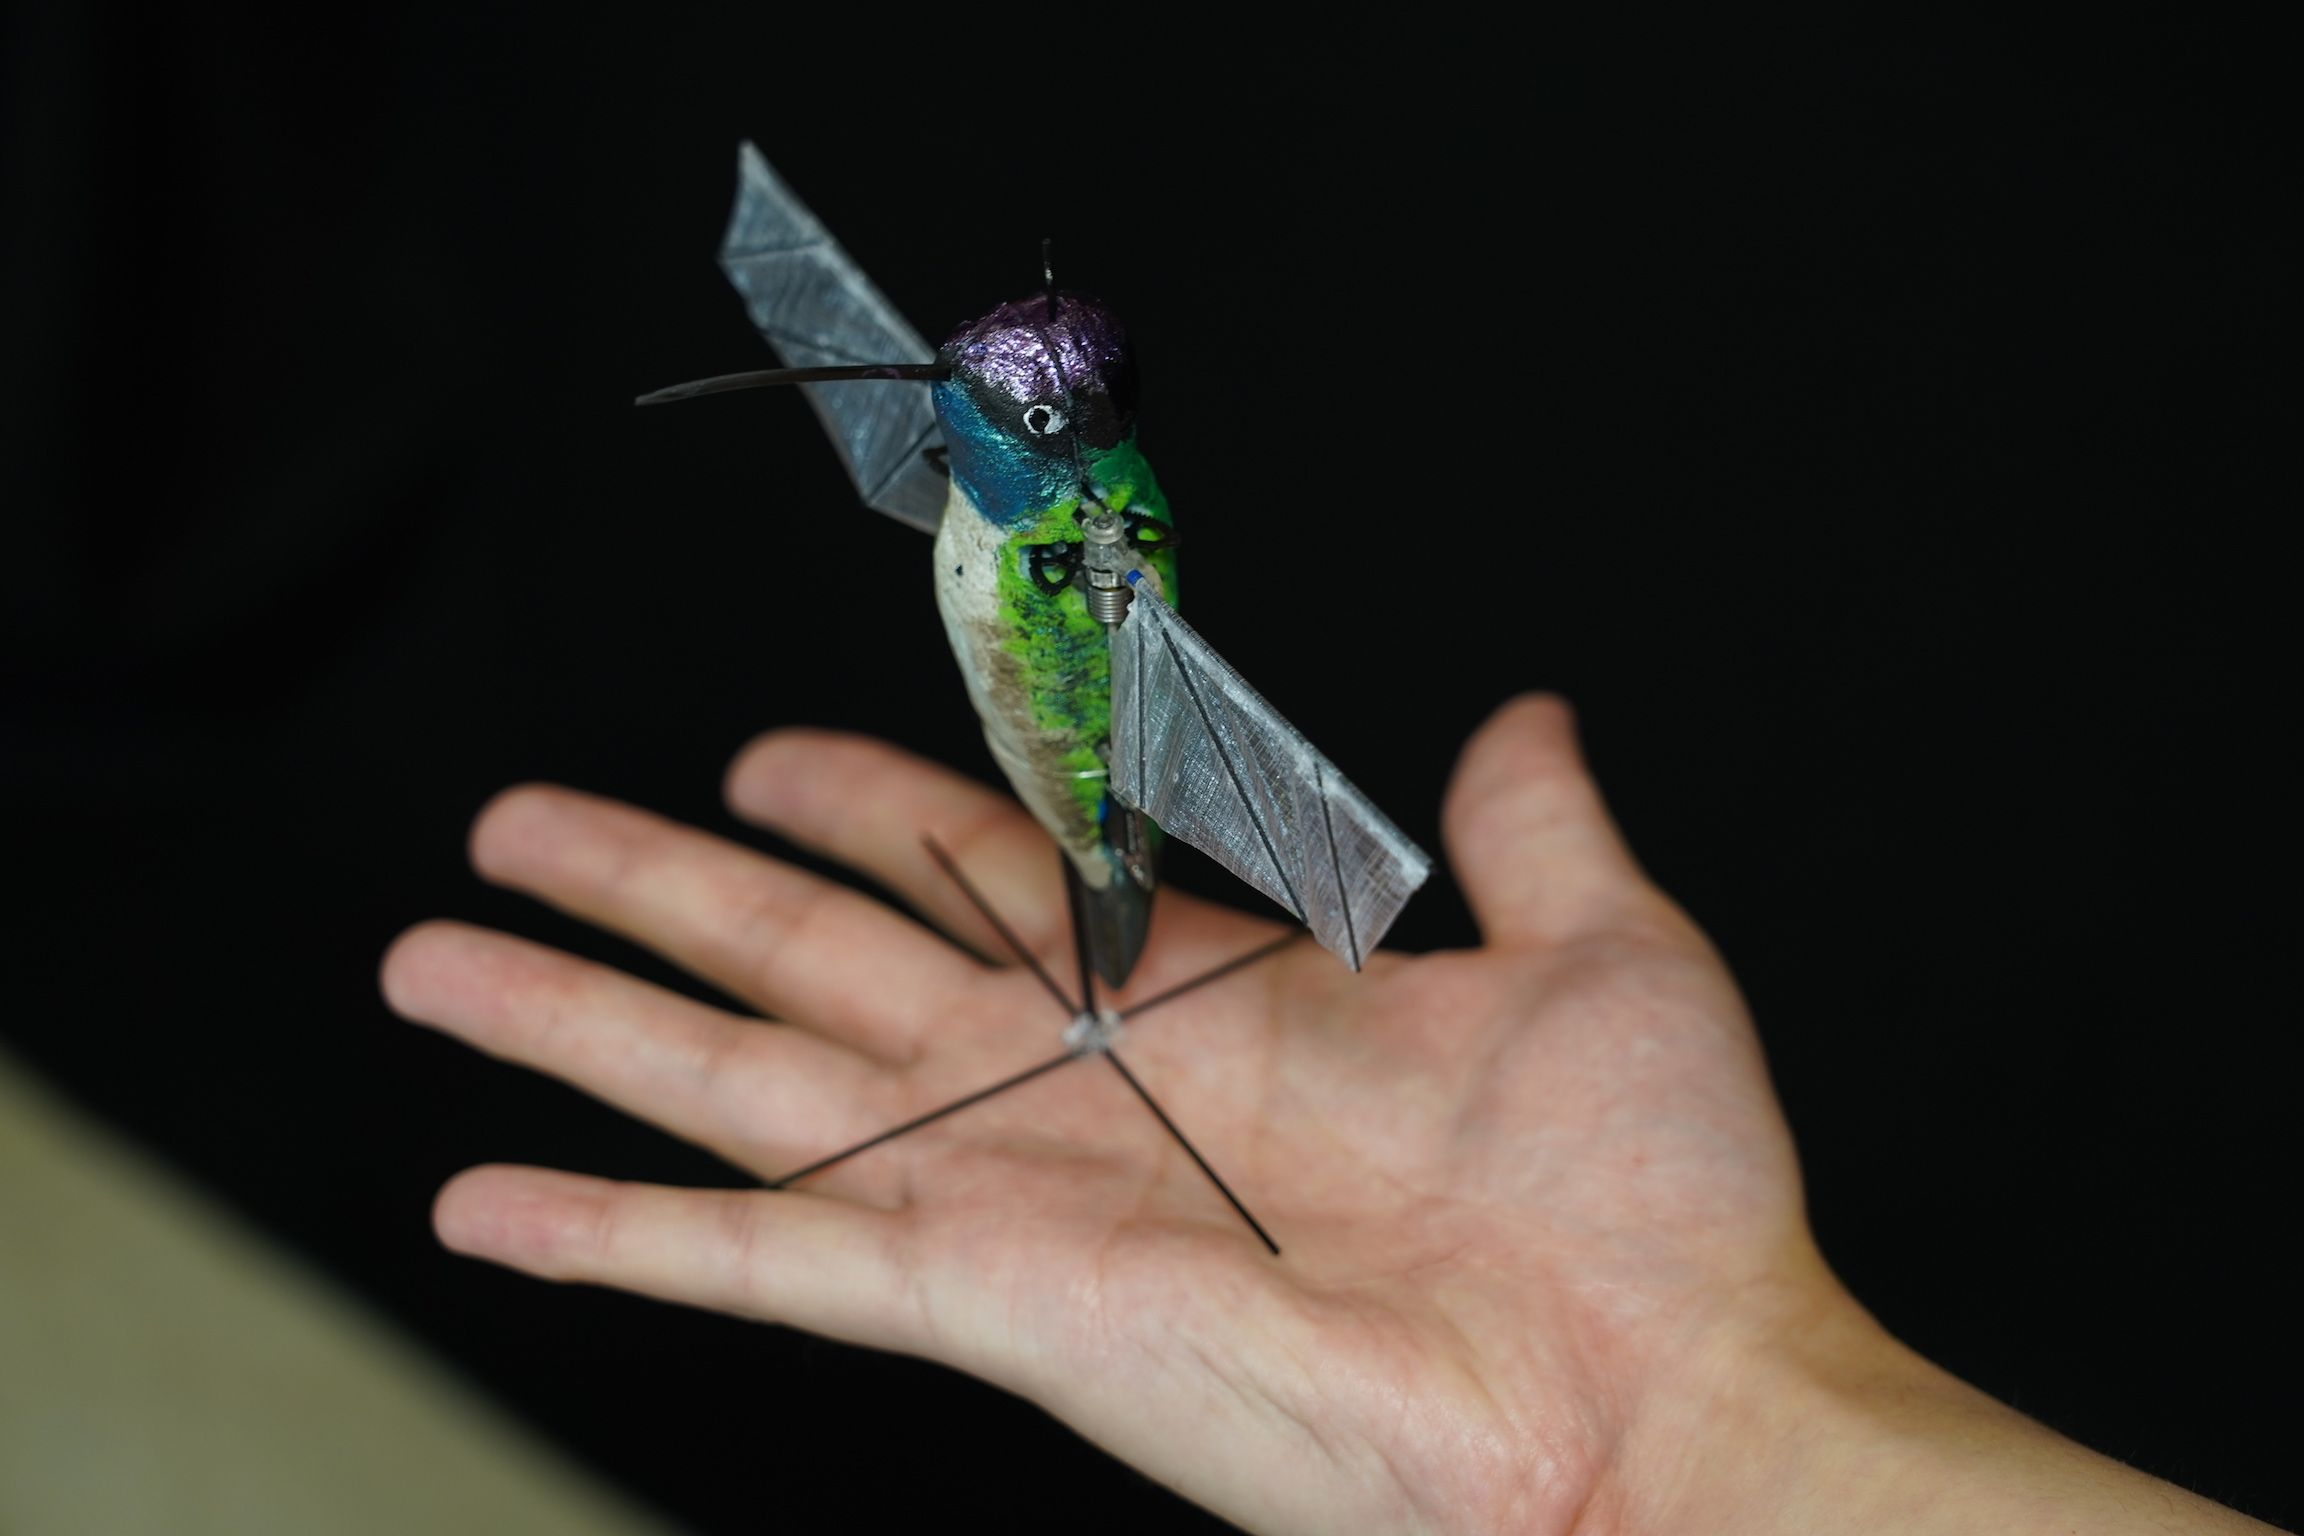 This Robot Hummingbird Is Almost as Agile as the Real Thing